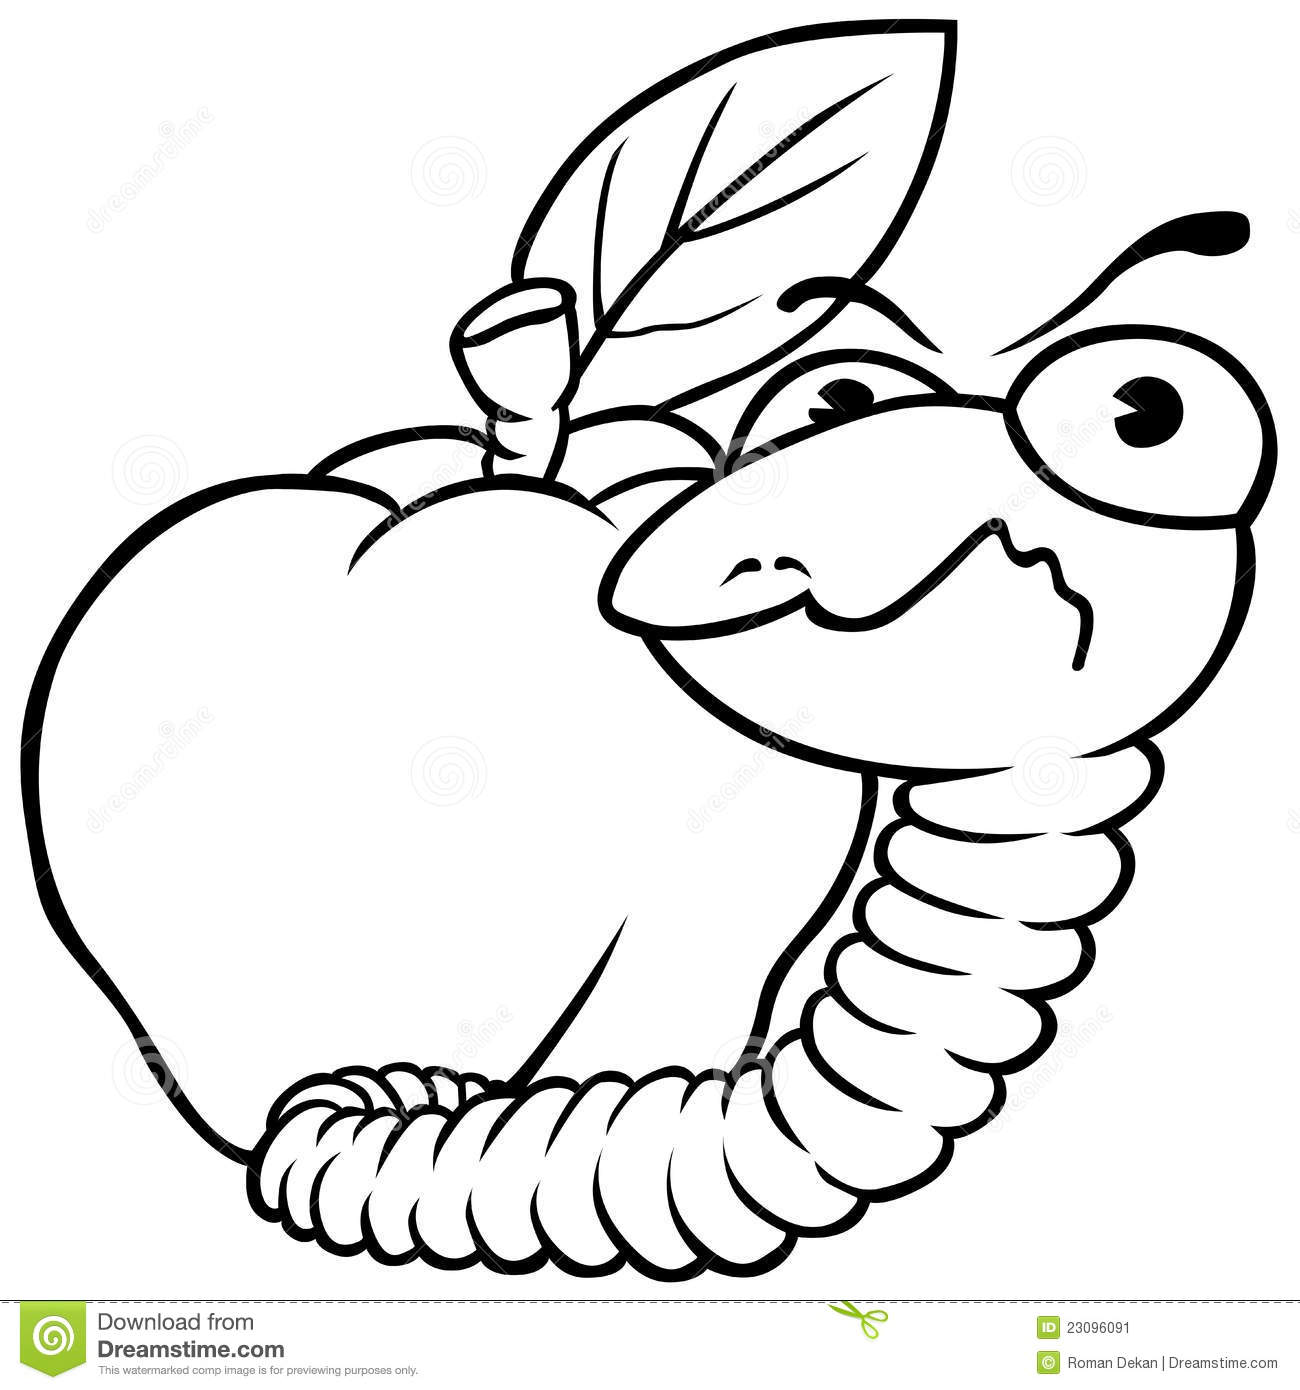 Worm And Apple Stock Vector Illustration Of Insect Clip